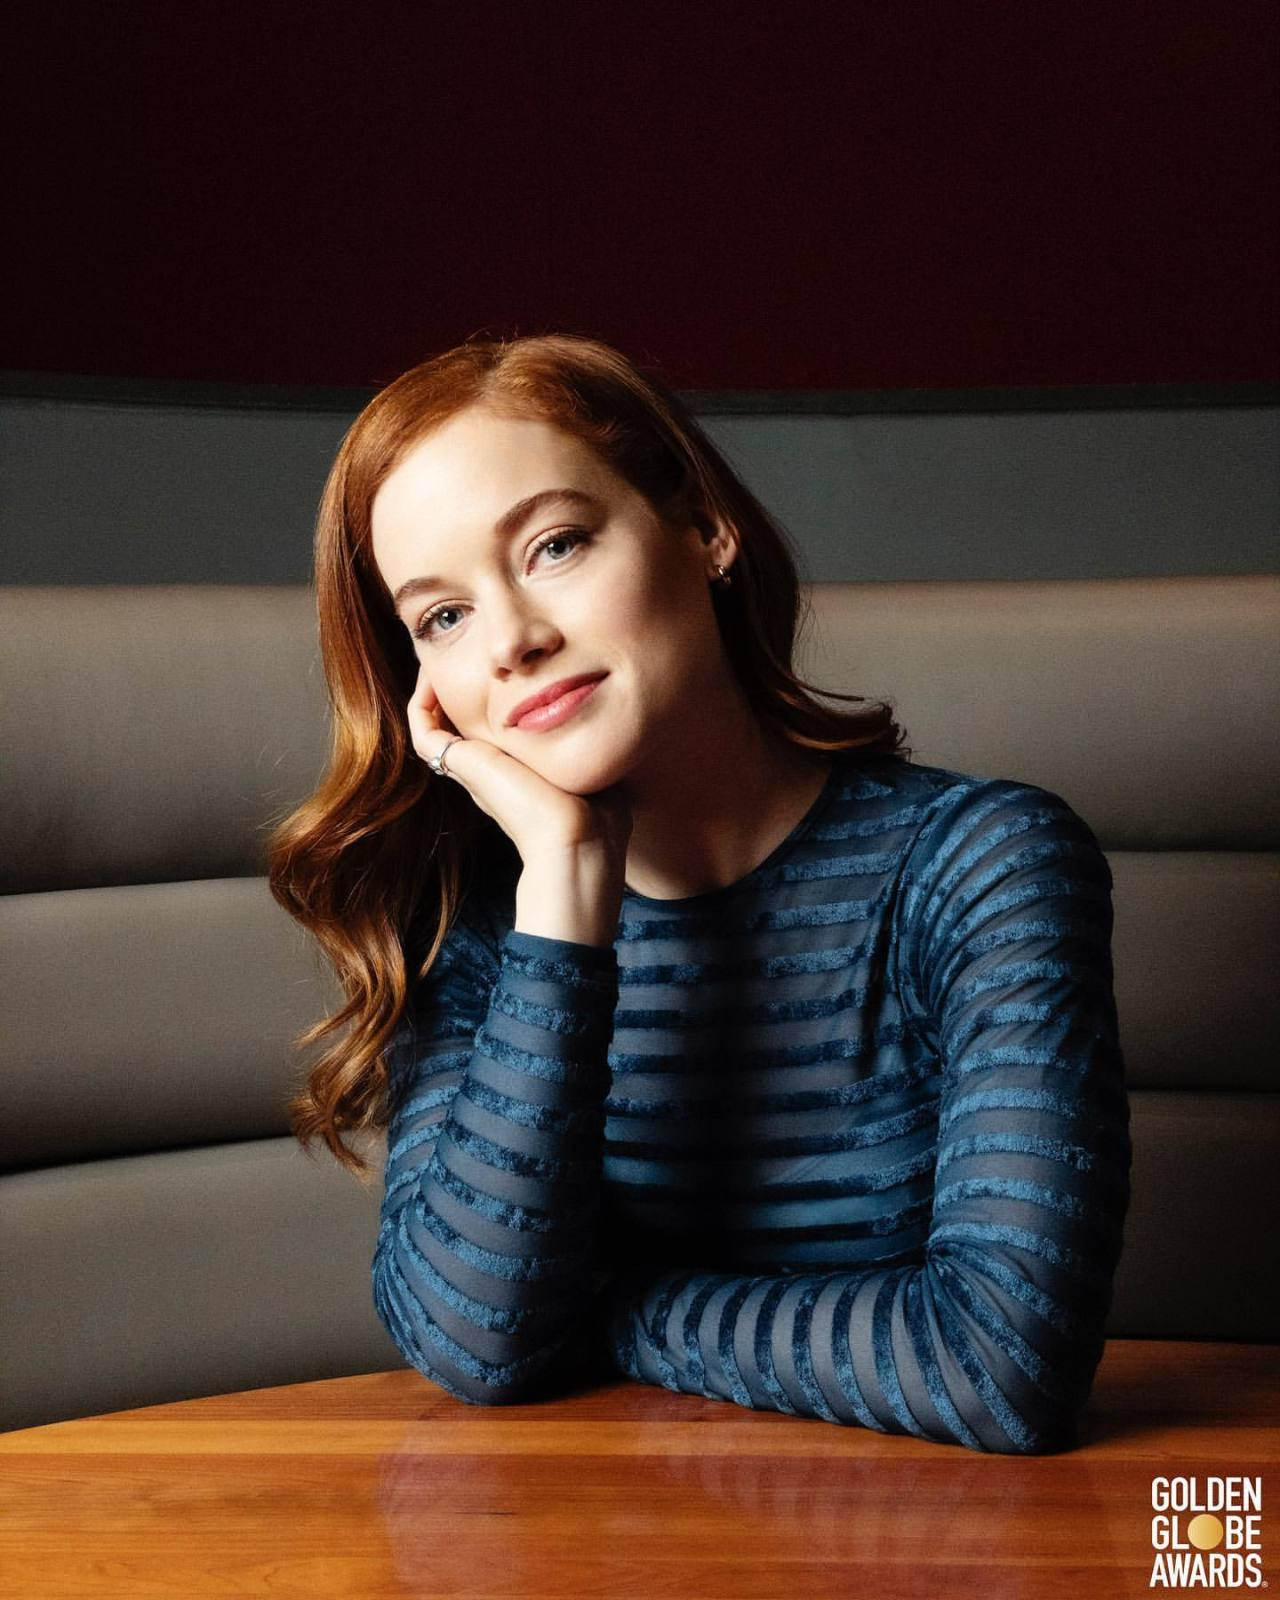 Jane Levy - 2021 Golden Globes portrait #Jane Levy#Golden Globes